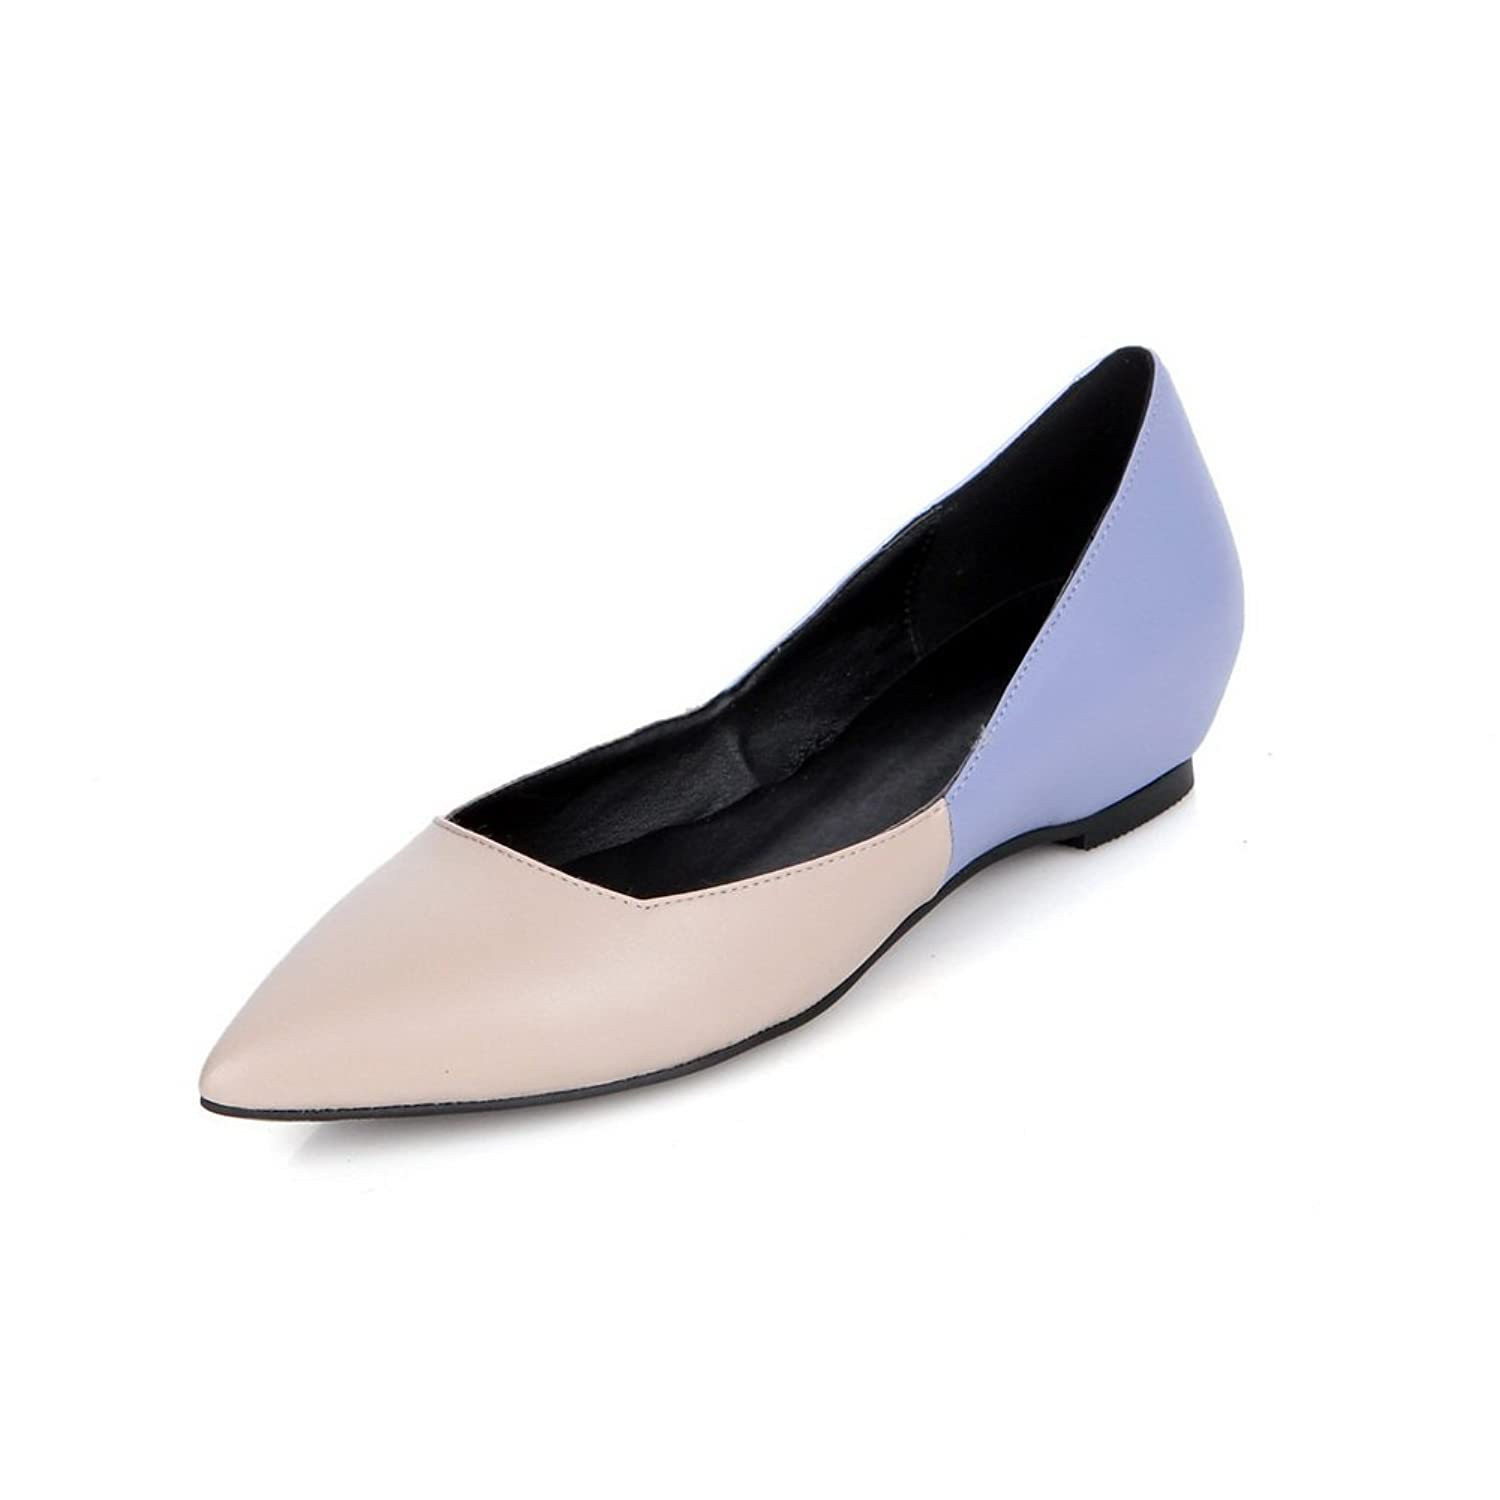 9139cf1a23c AdeeSu Womens No-Closure Assorted Color Pointed-Toe Pleather Loafers Shoes  SDC03846